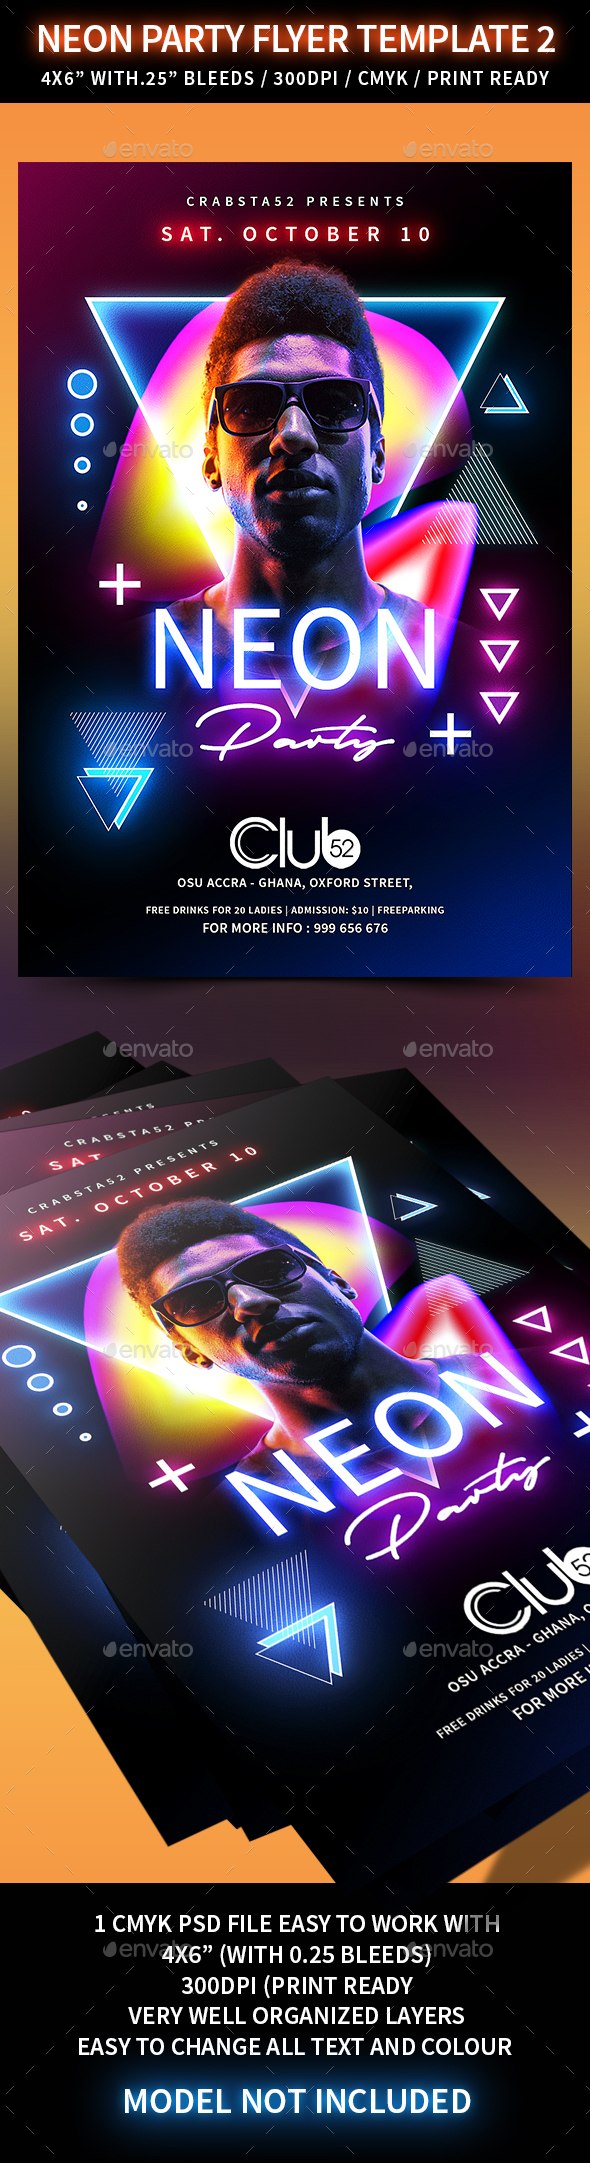 Neon Party Flyer Template 2 - Clubs & Parties Events